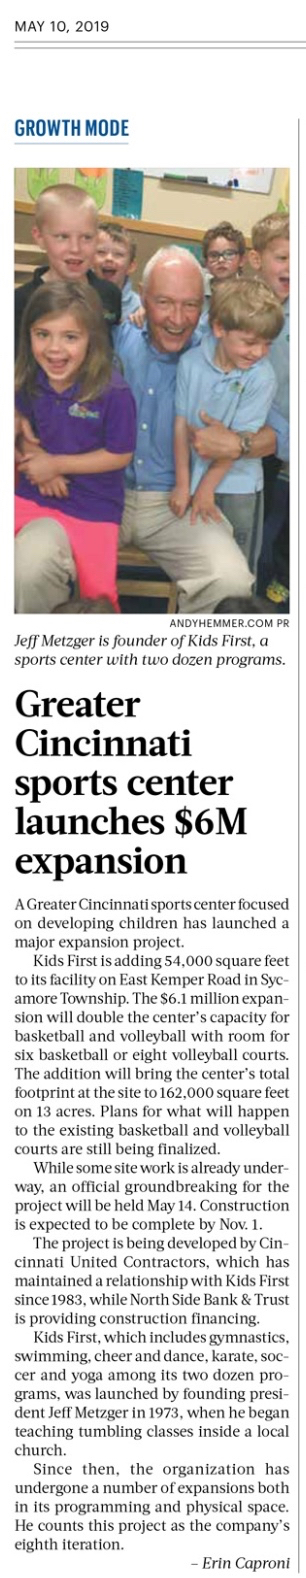 Kids First Sports in Cincinnati Business Courier PR by Andy Hemmer